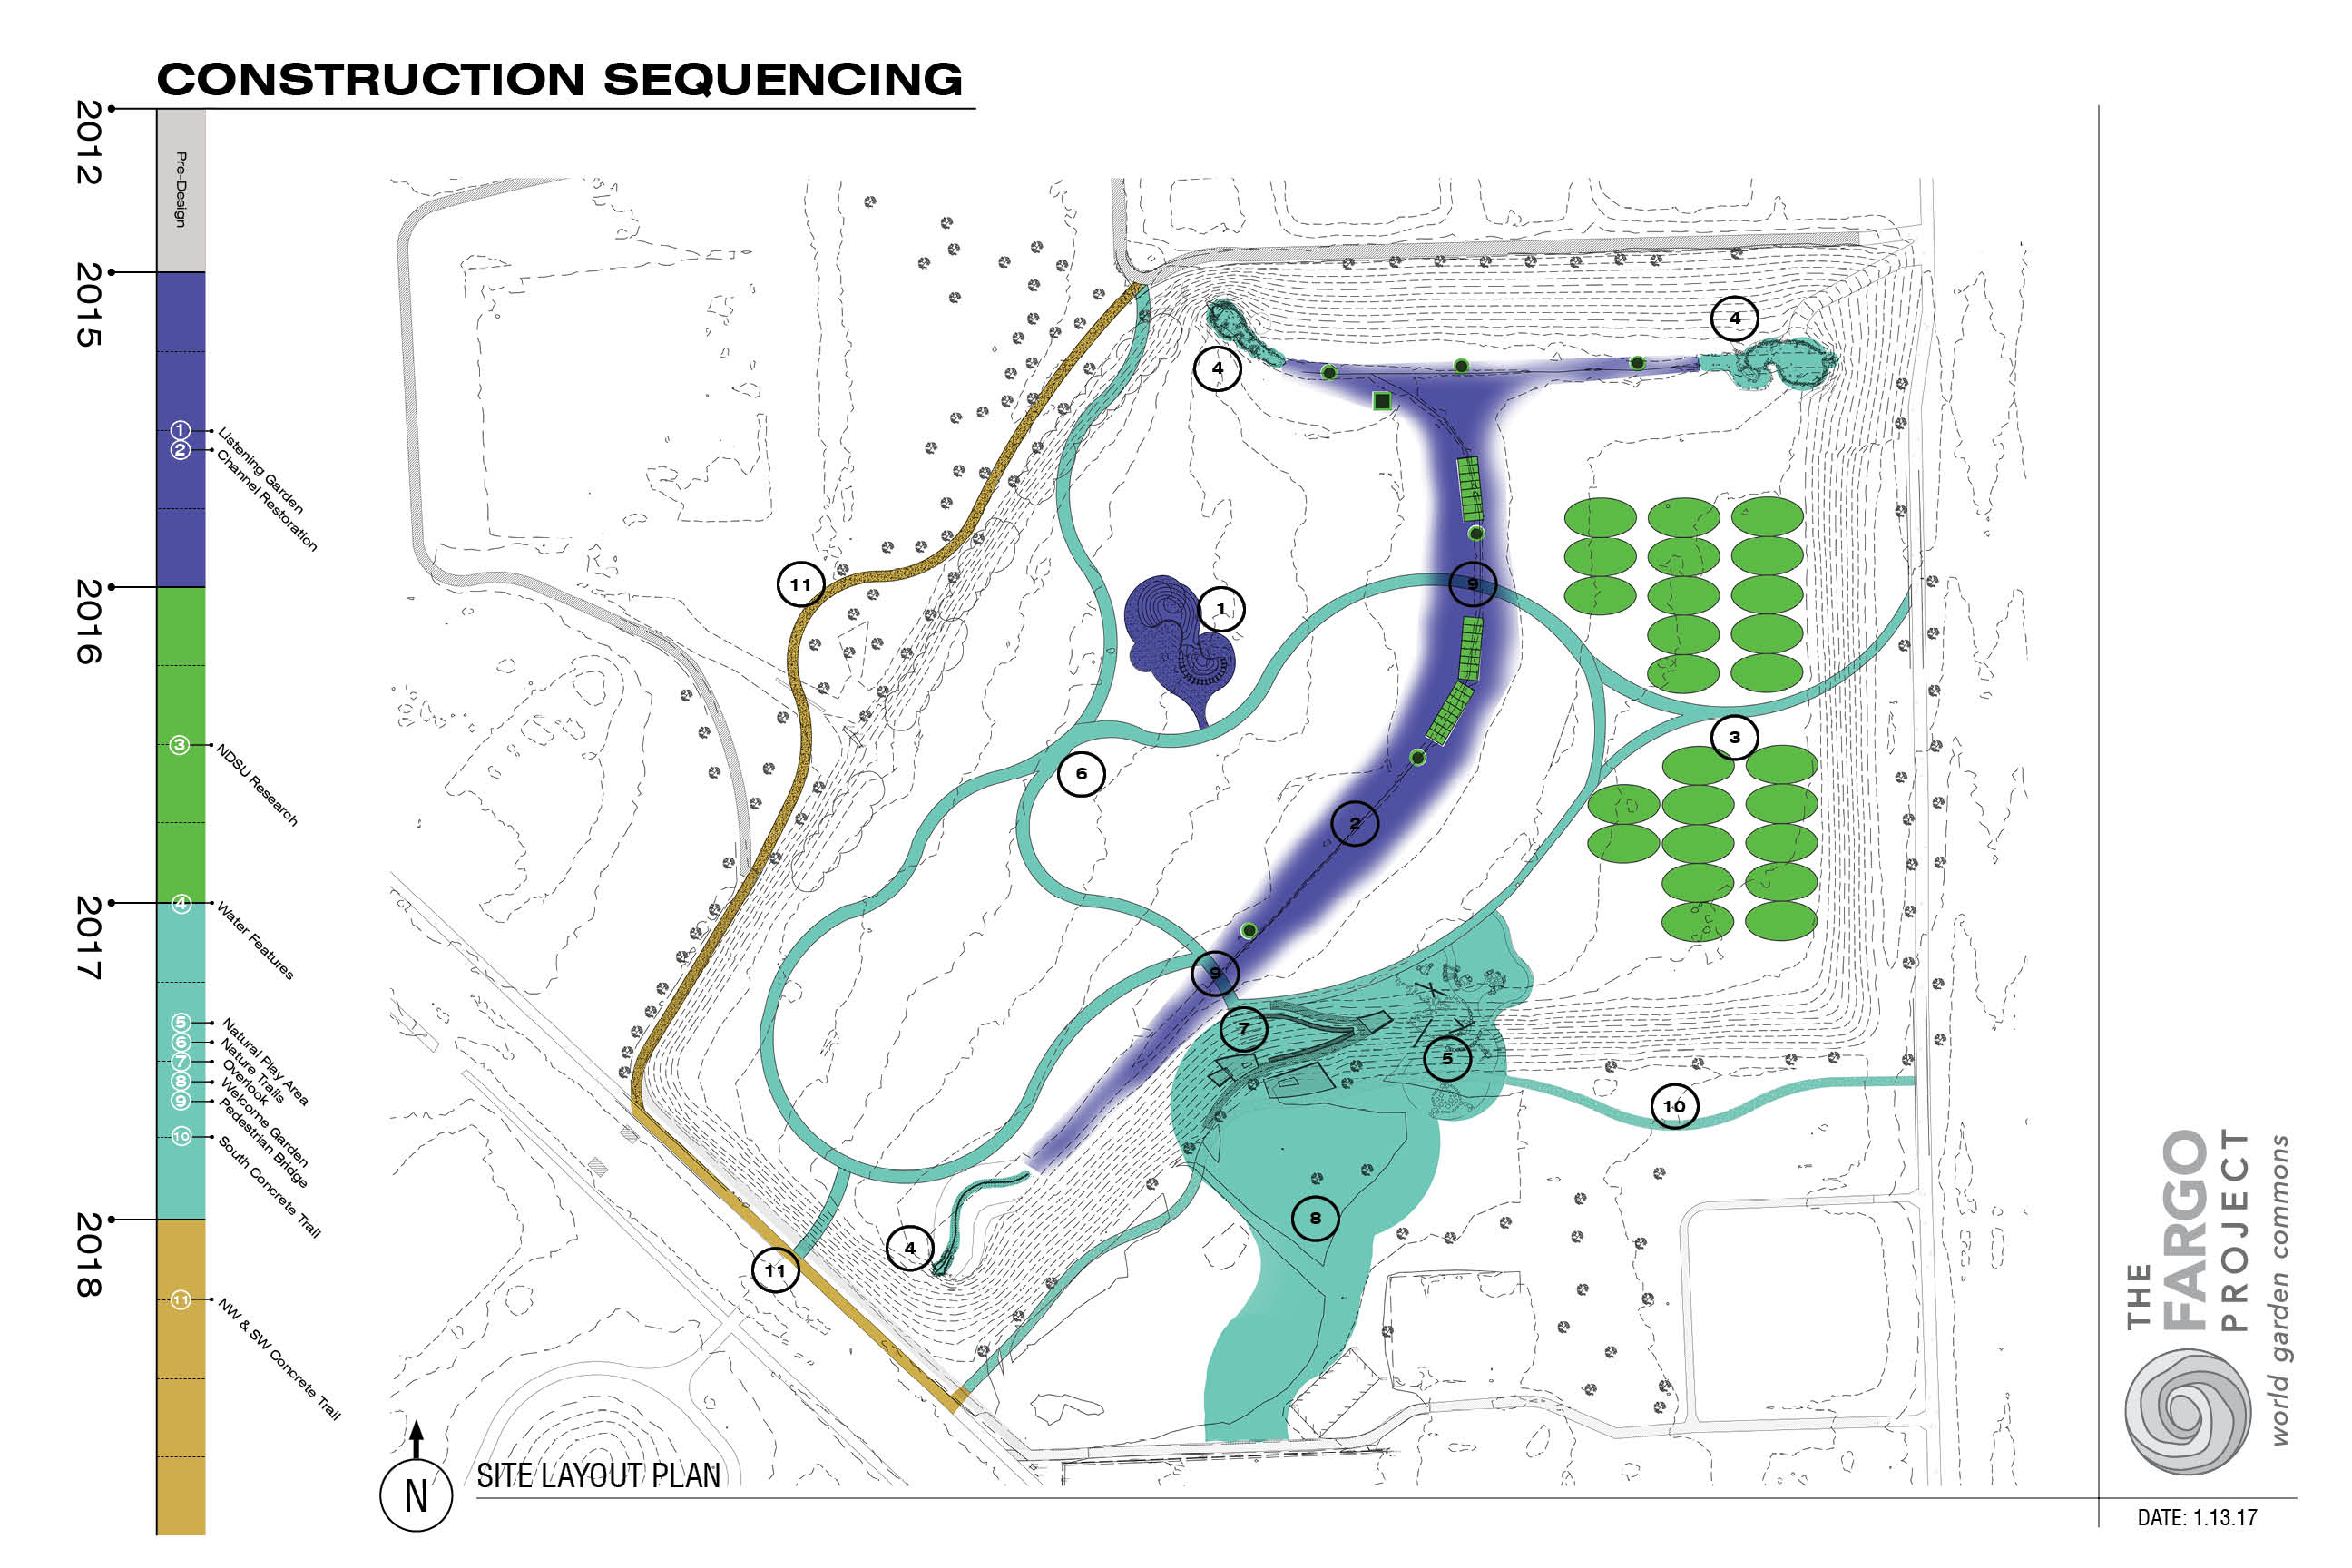 The map outlines construction sequence at World Garden Commons